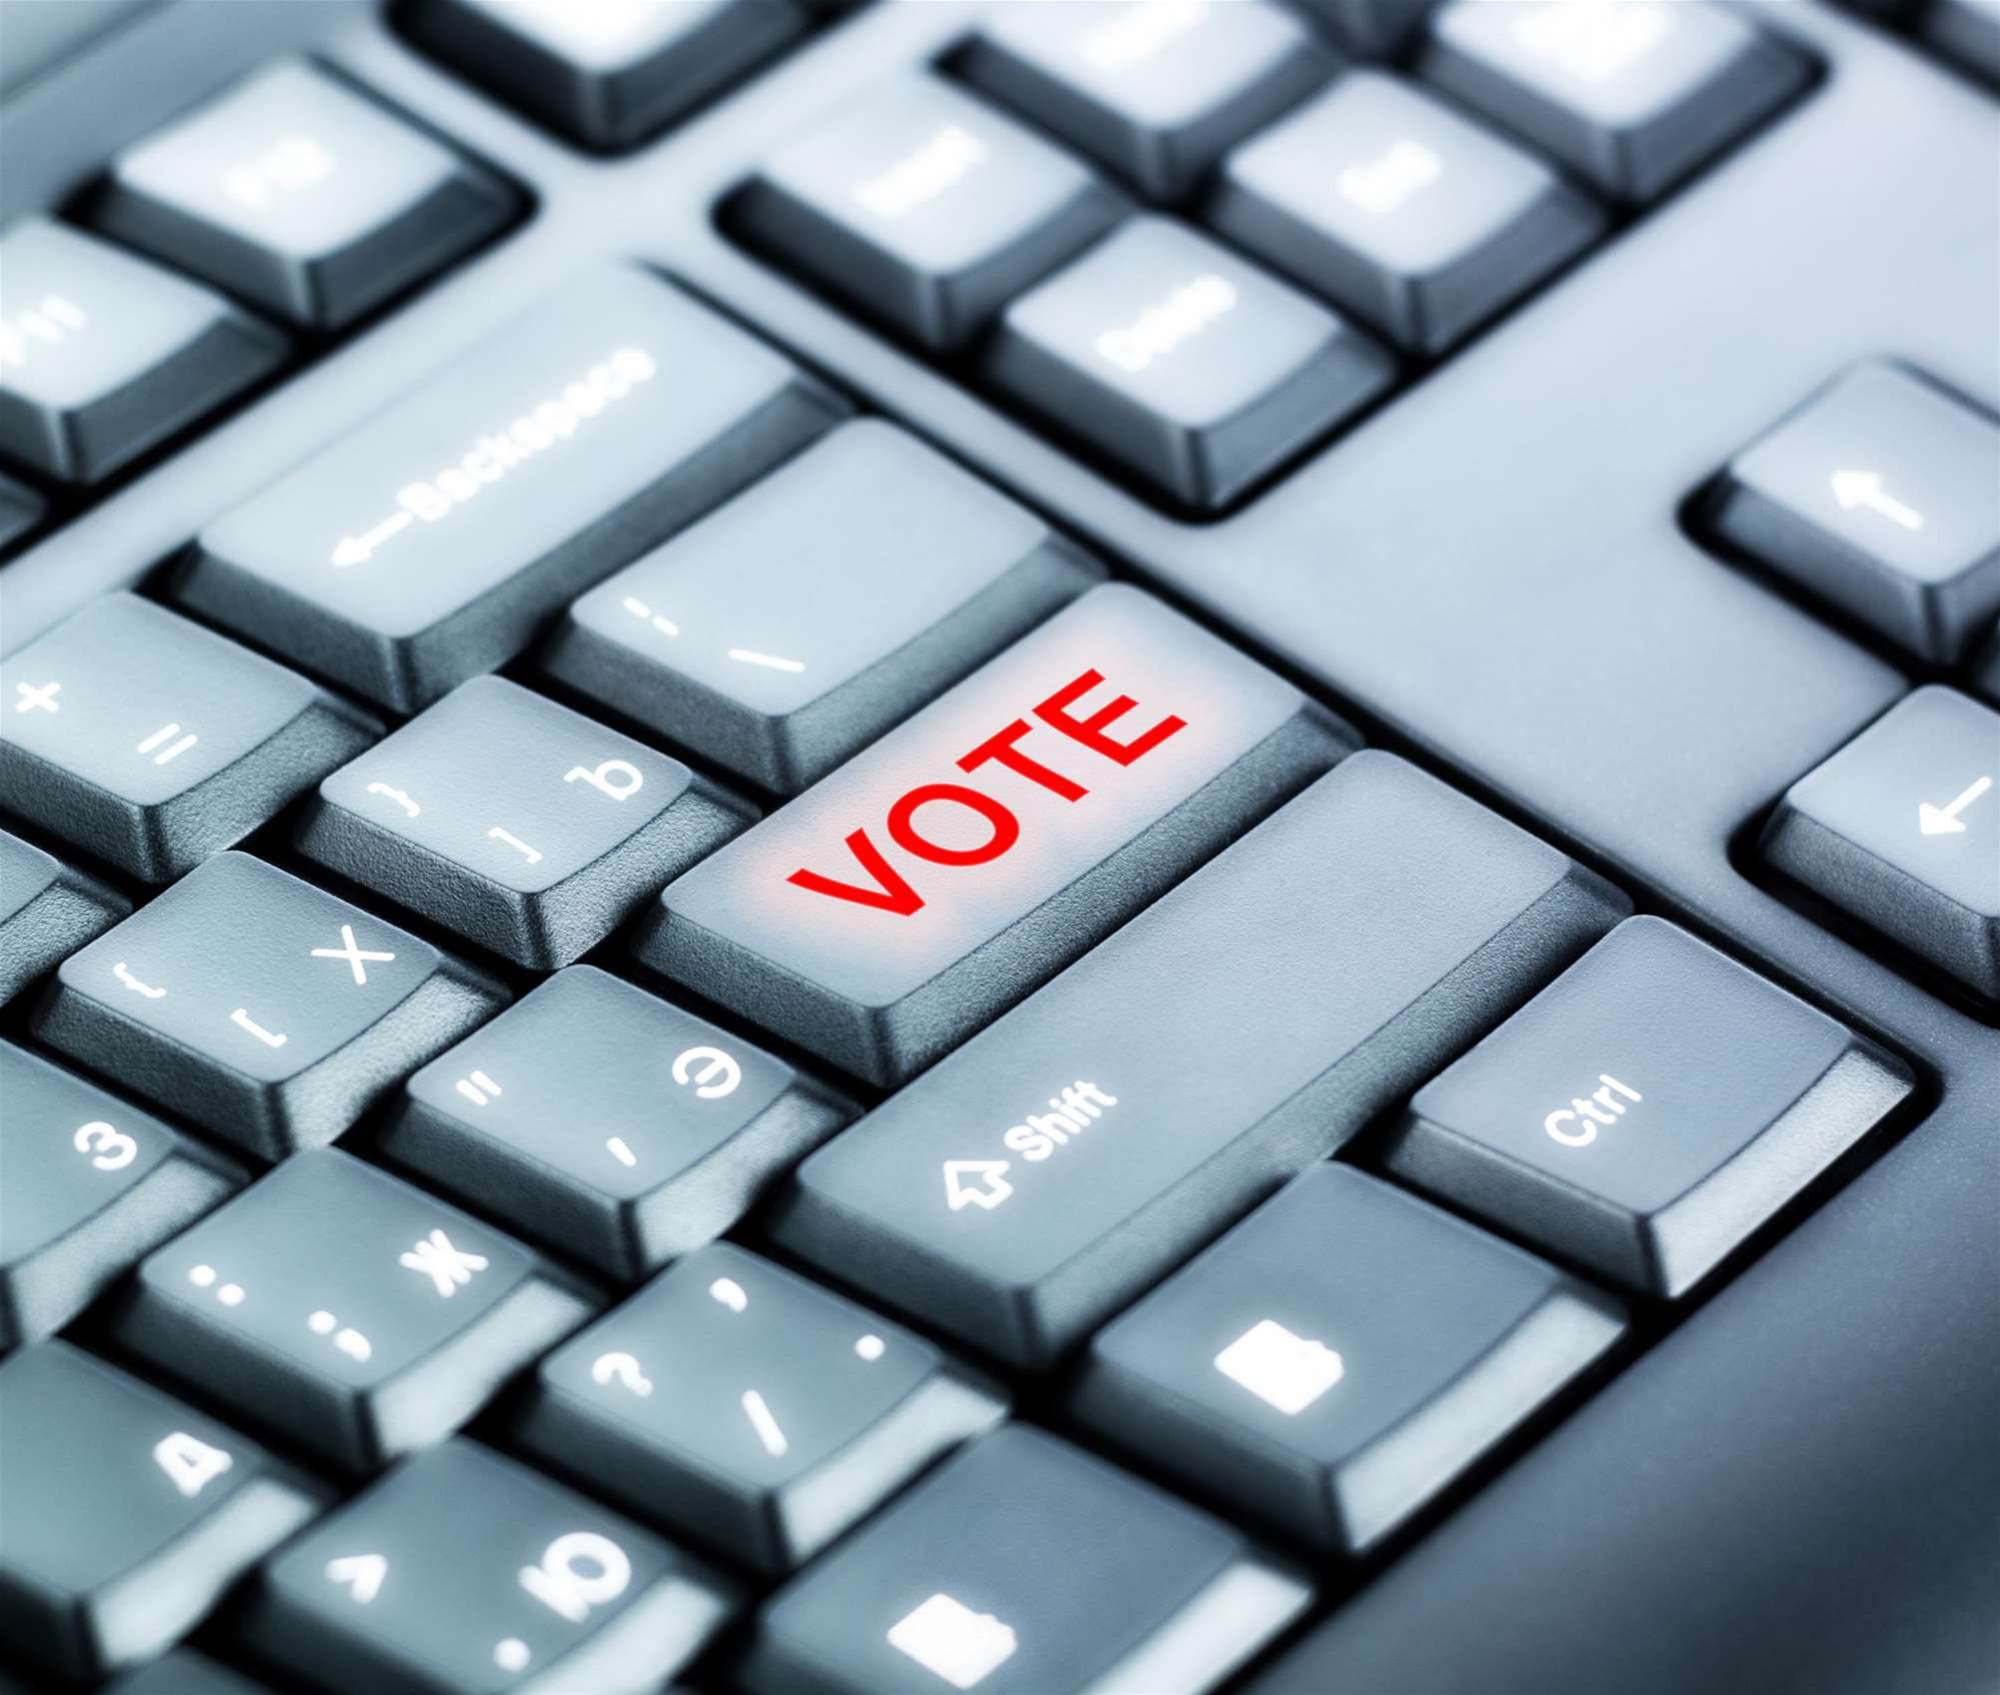 AEC is 'not ready' for electronic voting